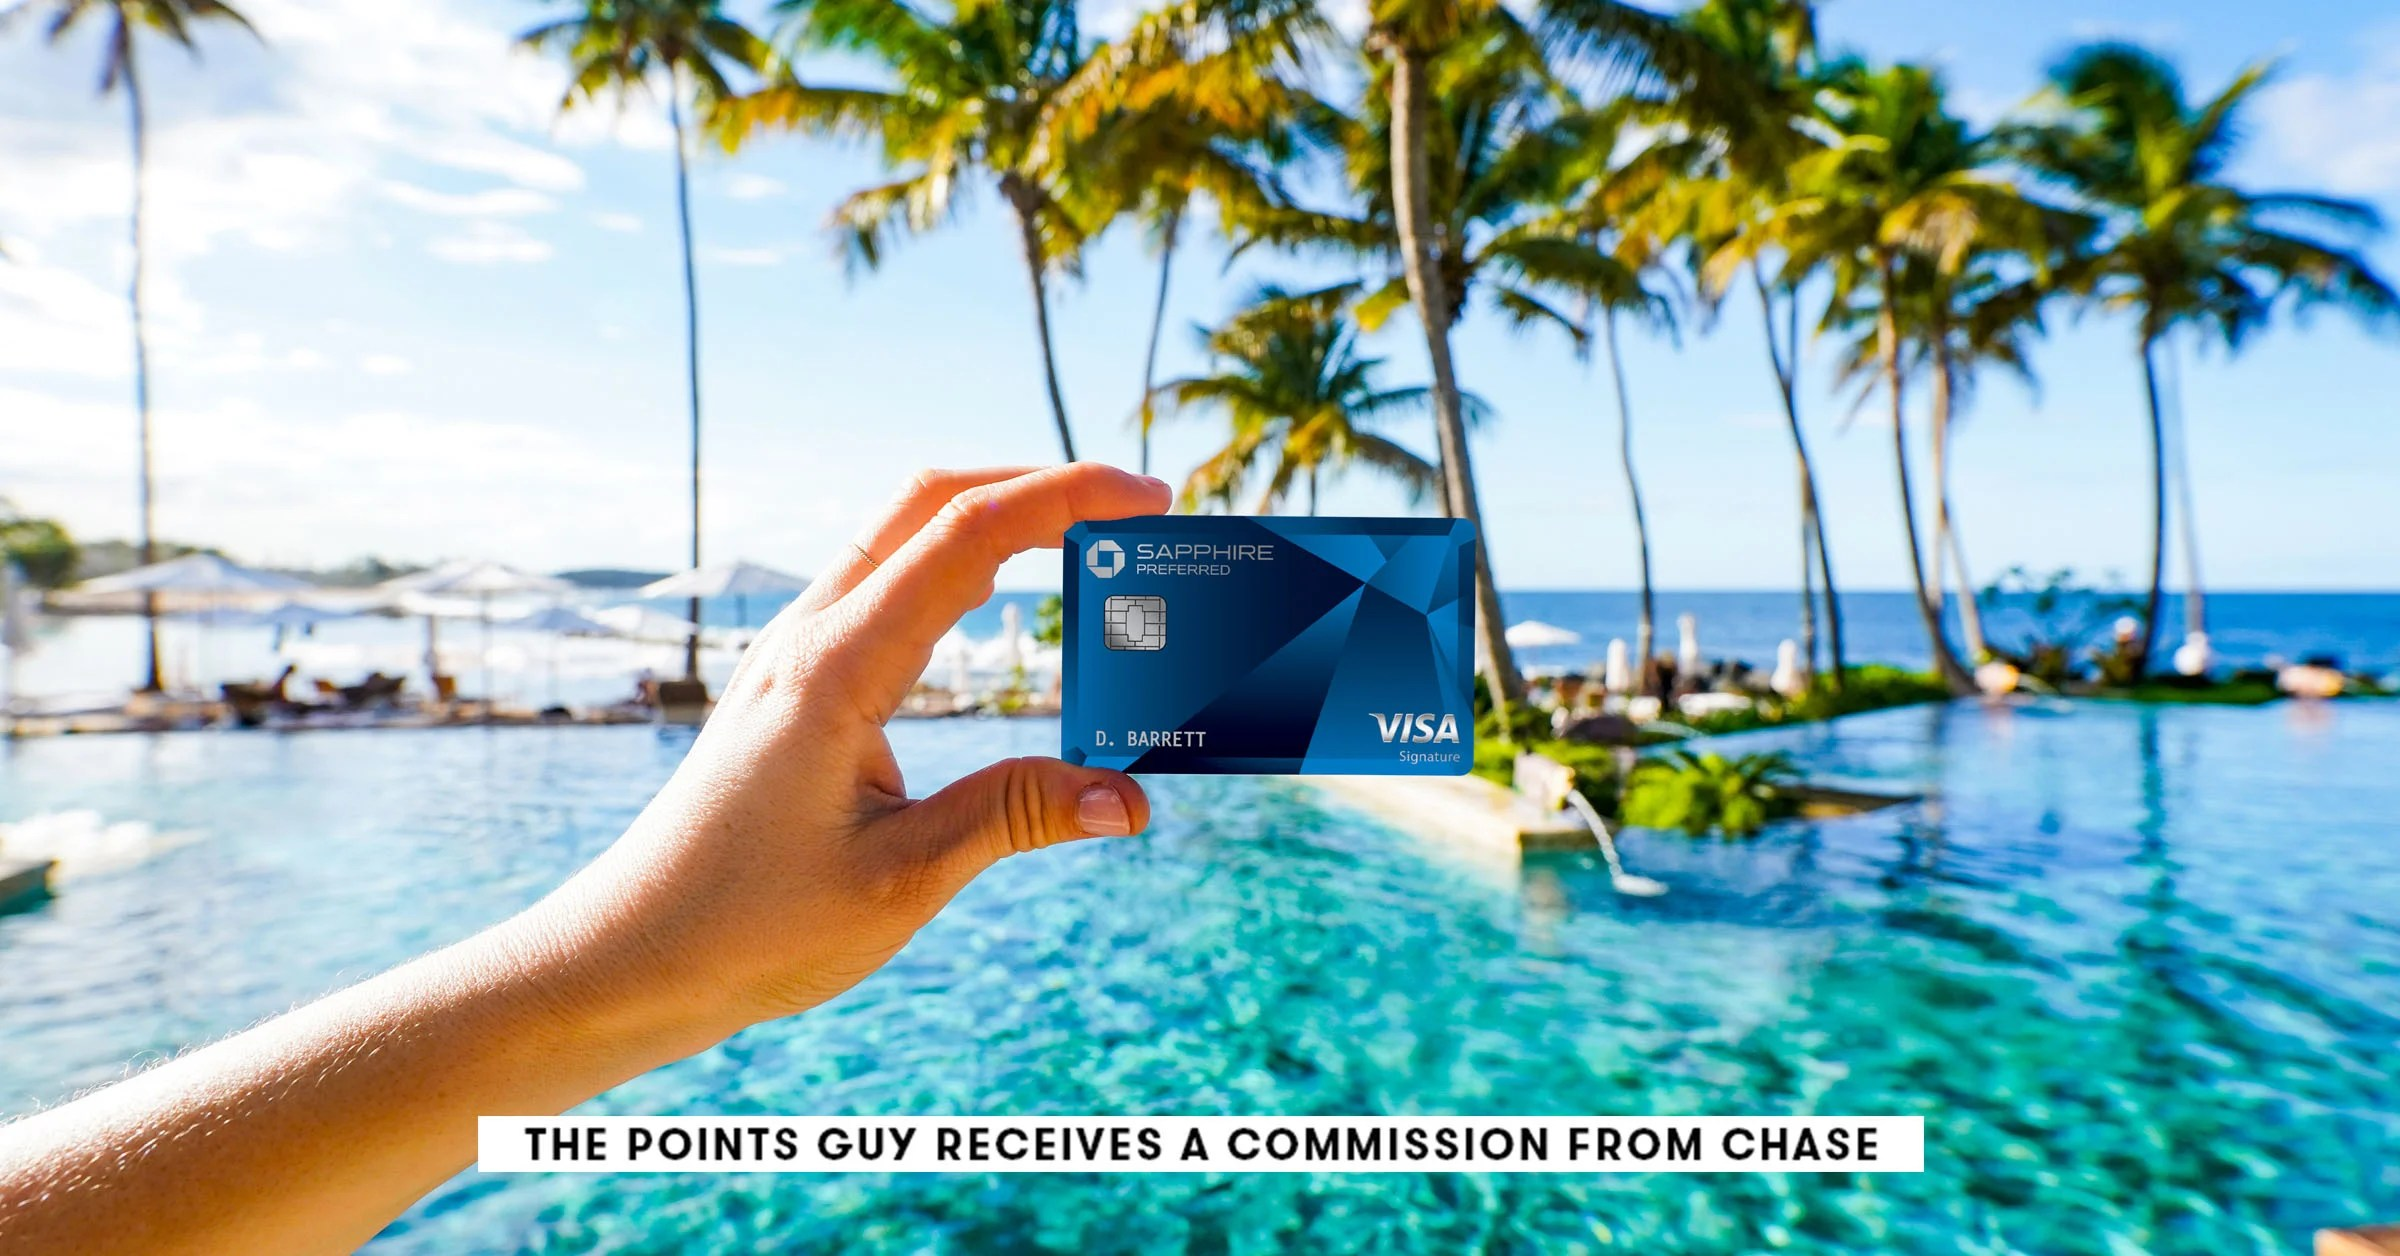 Chase Sapphire Preferred | Benefits and Perks - The Points Guy